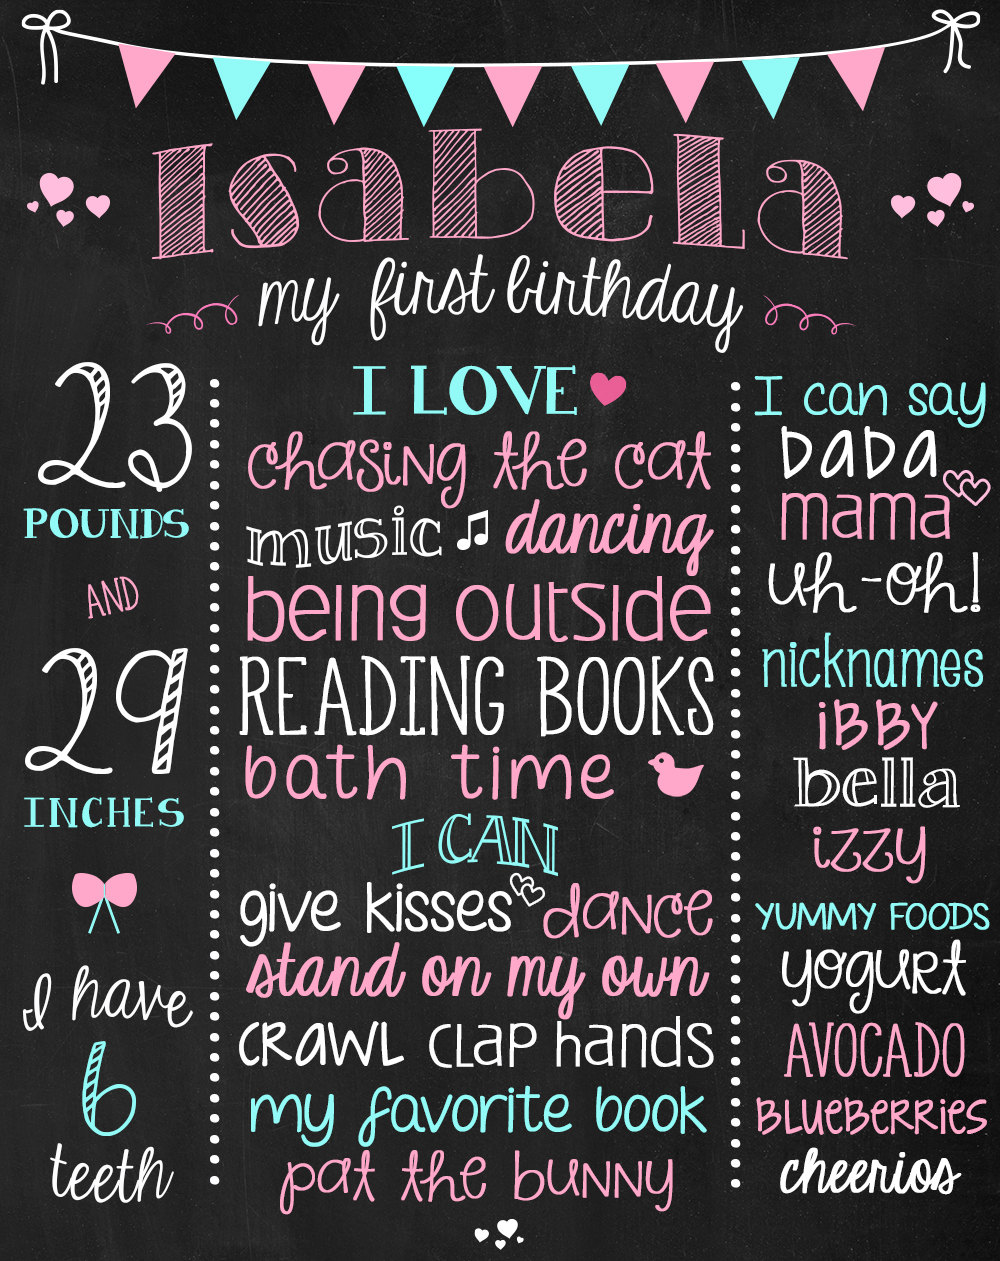 first birthday poster ideas ; 21st_birthday_poster_list_picture_ideas_with_birthday_flowers_0